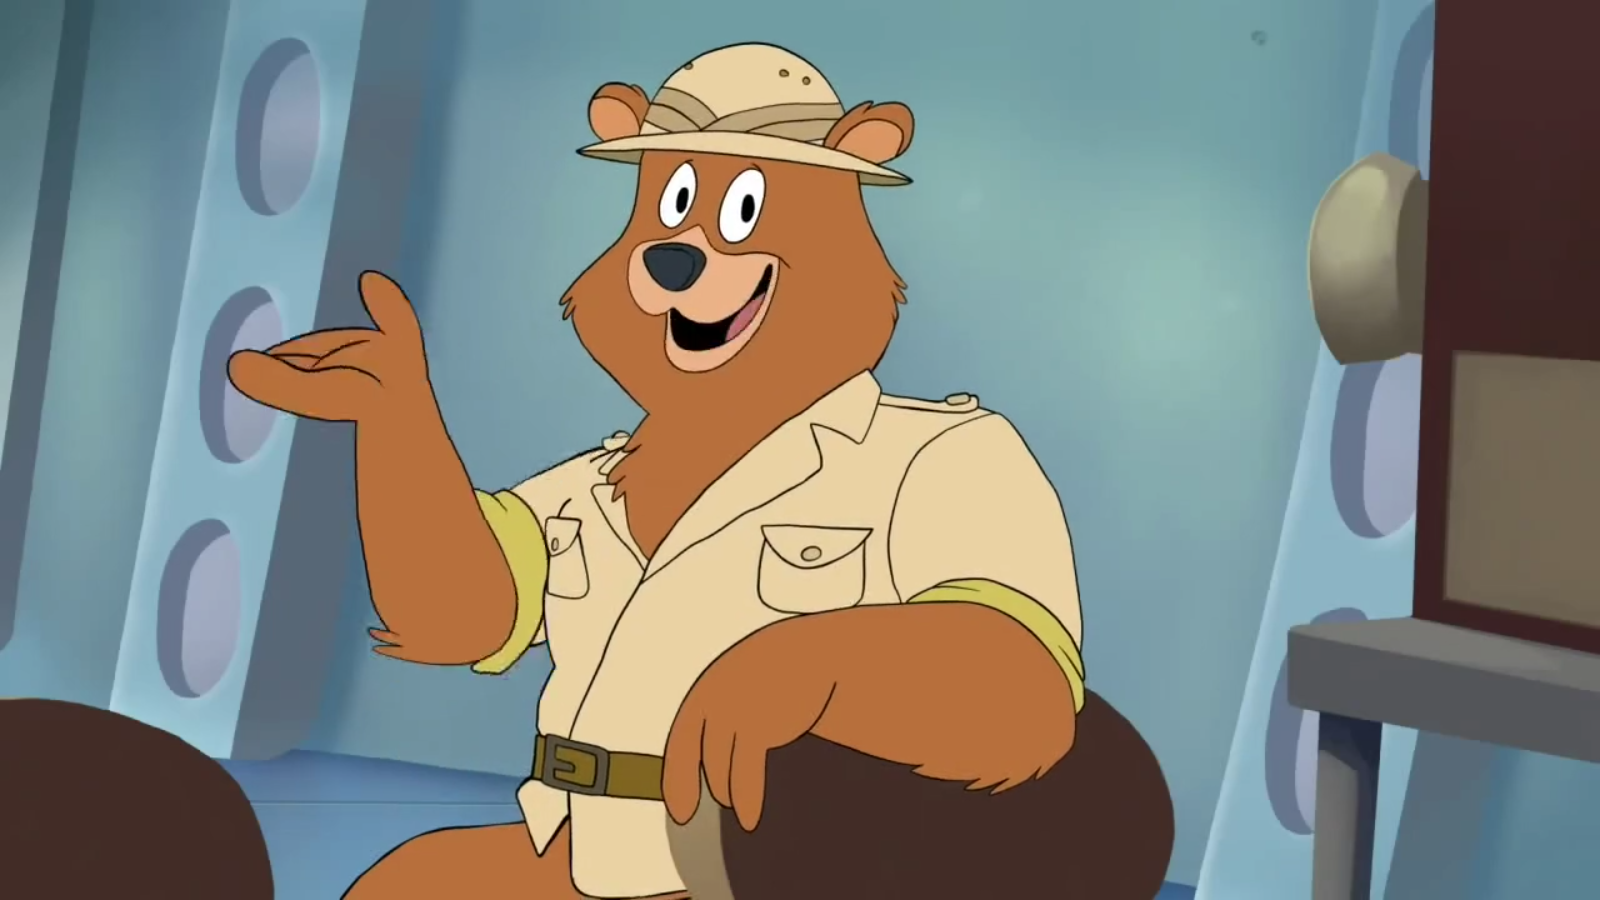 90's Adventure Bear (character)